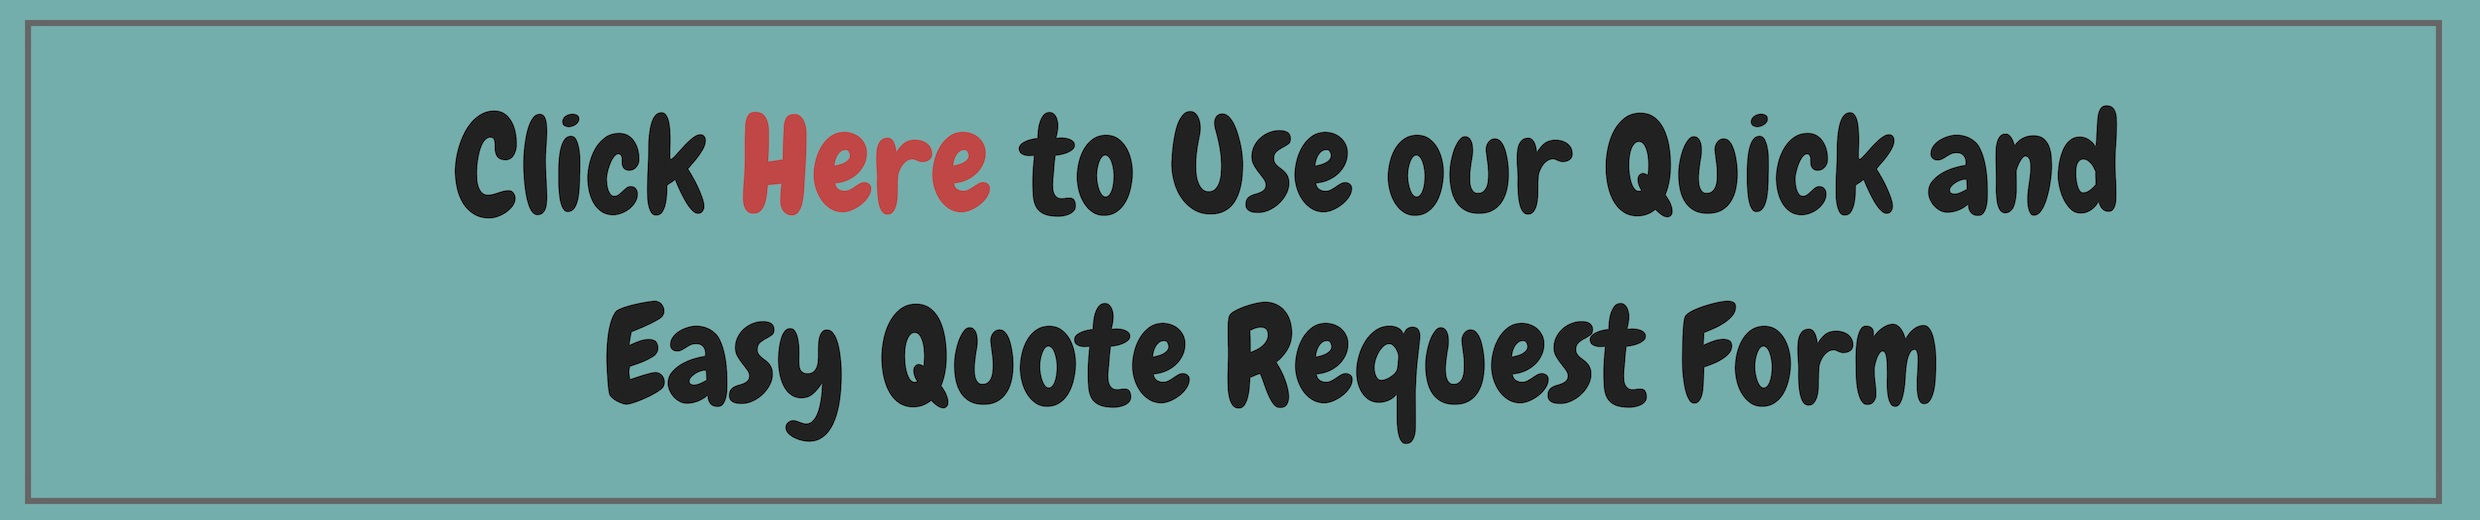 use-our-quick-and-easy-quote-form-2-.jpg